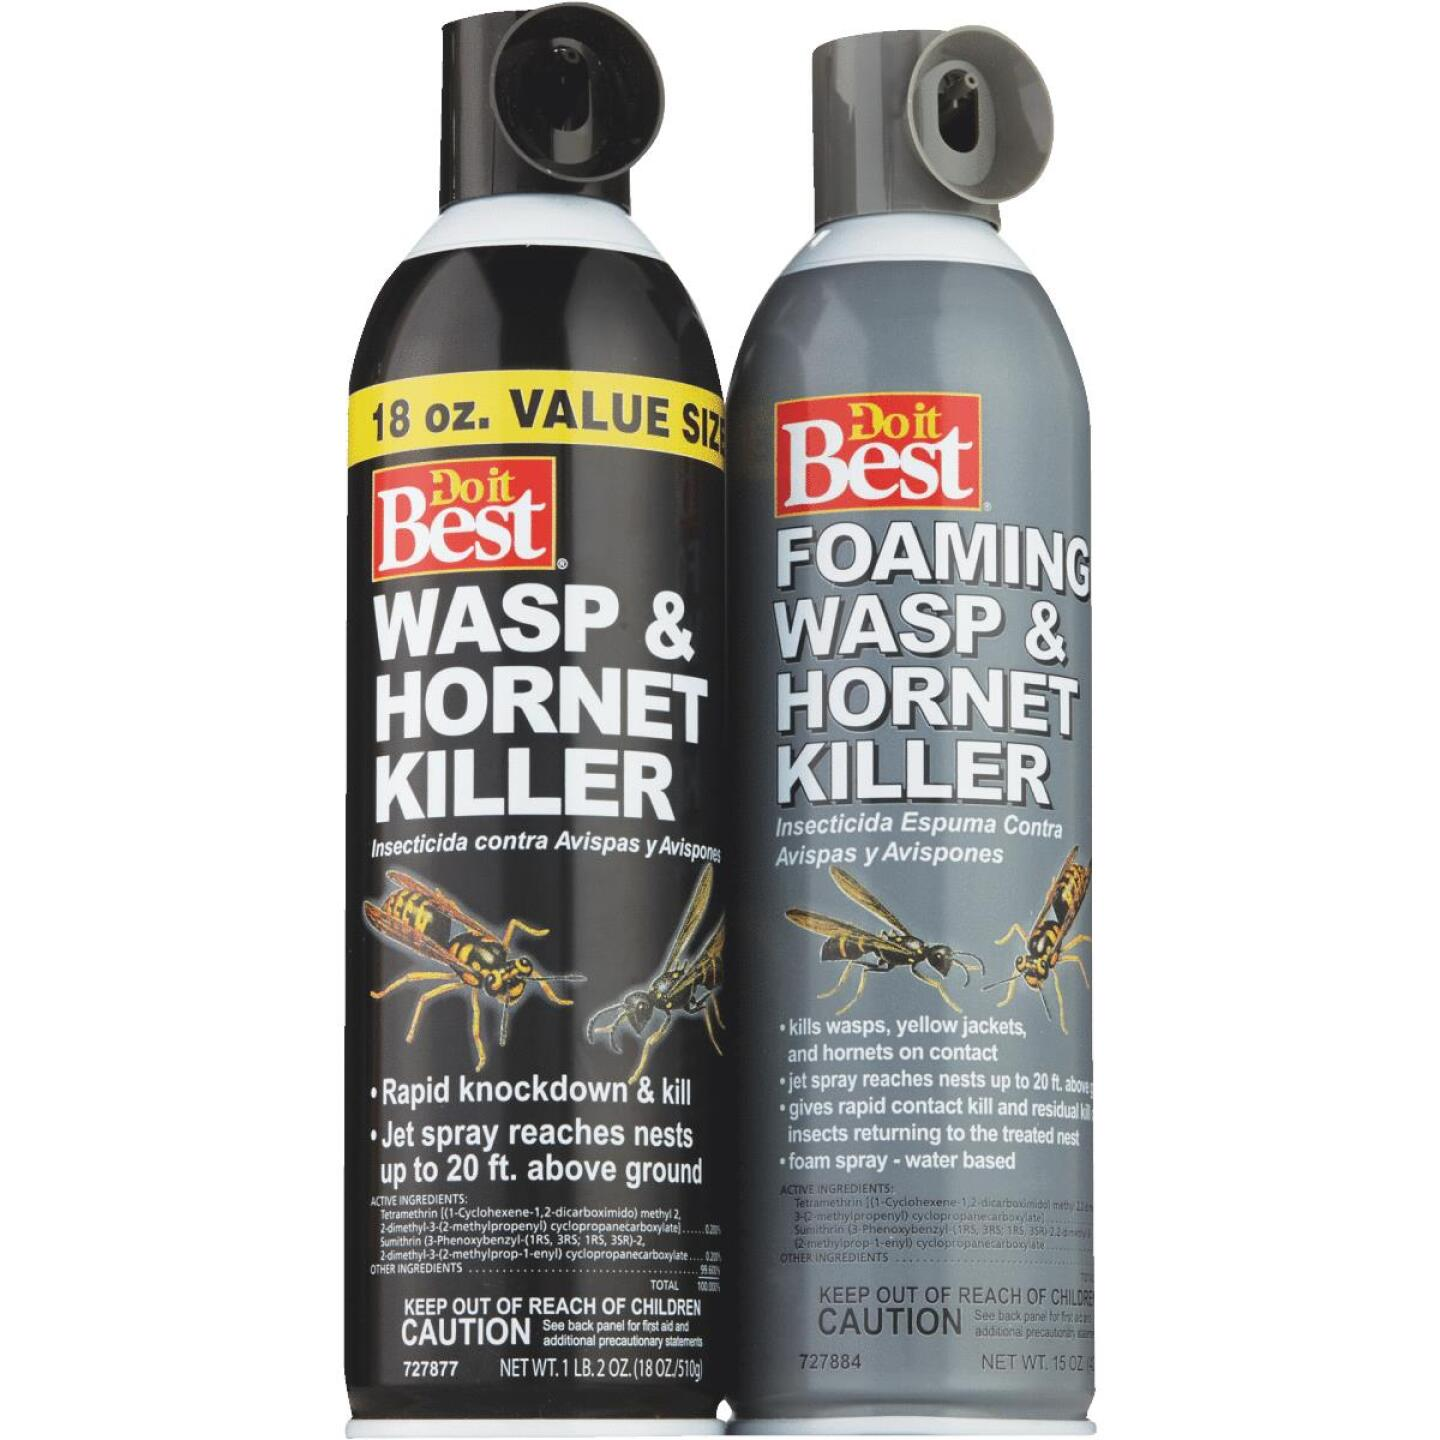 Do it Best 18 Oz. Liquid Aerosol Spray Wasp & Hornet Killer Image 2